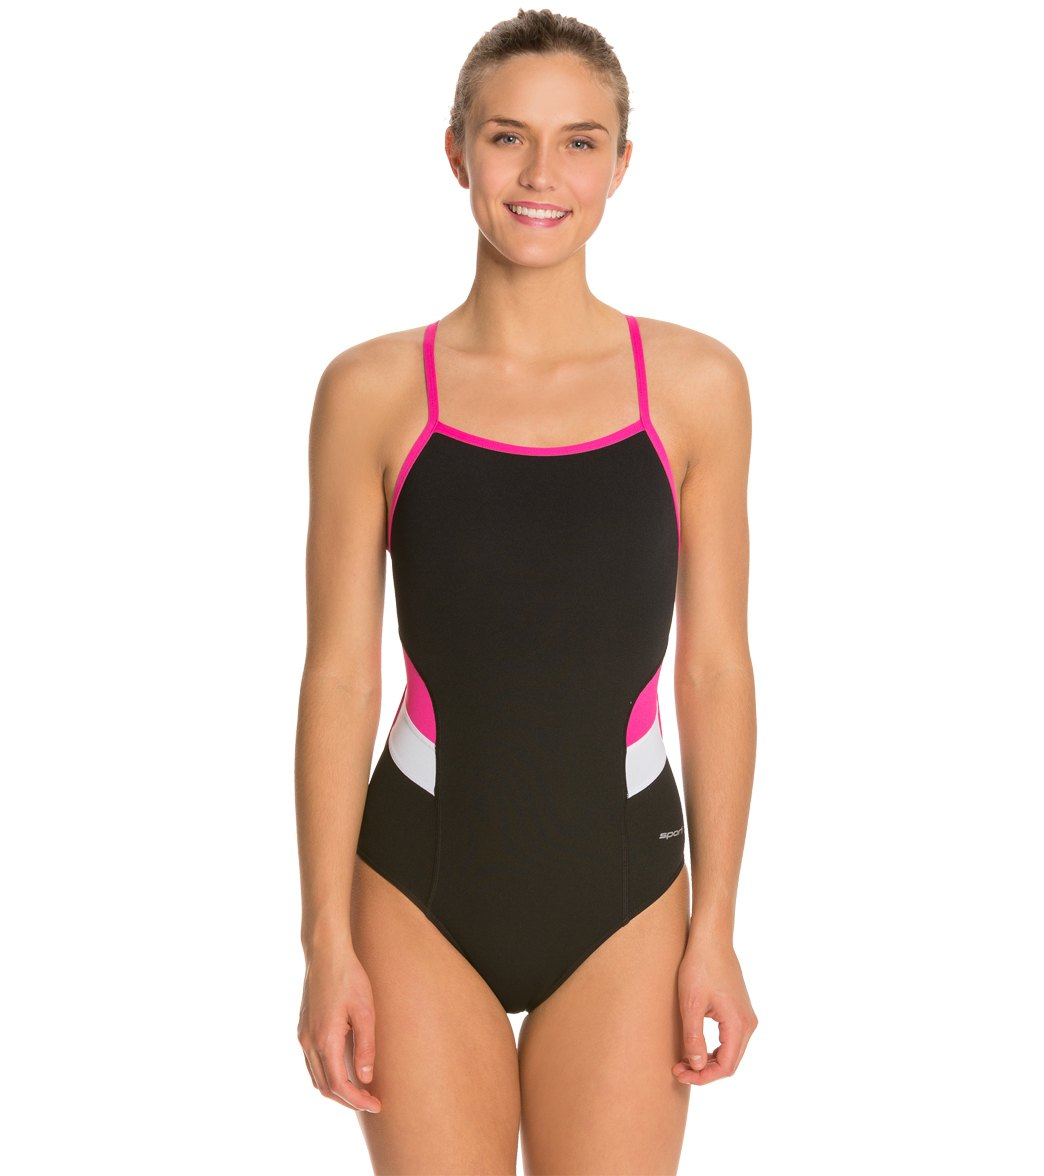 99a7c33c1d066 Sporti Poly Pro Splice Thin Strap One Piece Swimsuit at SwimOutlet.com